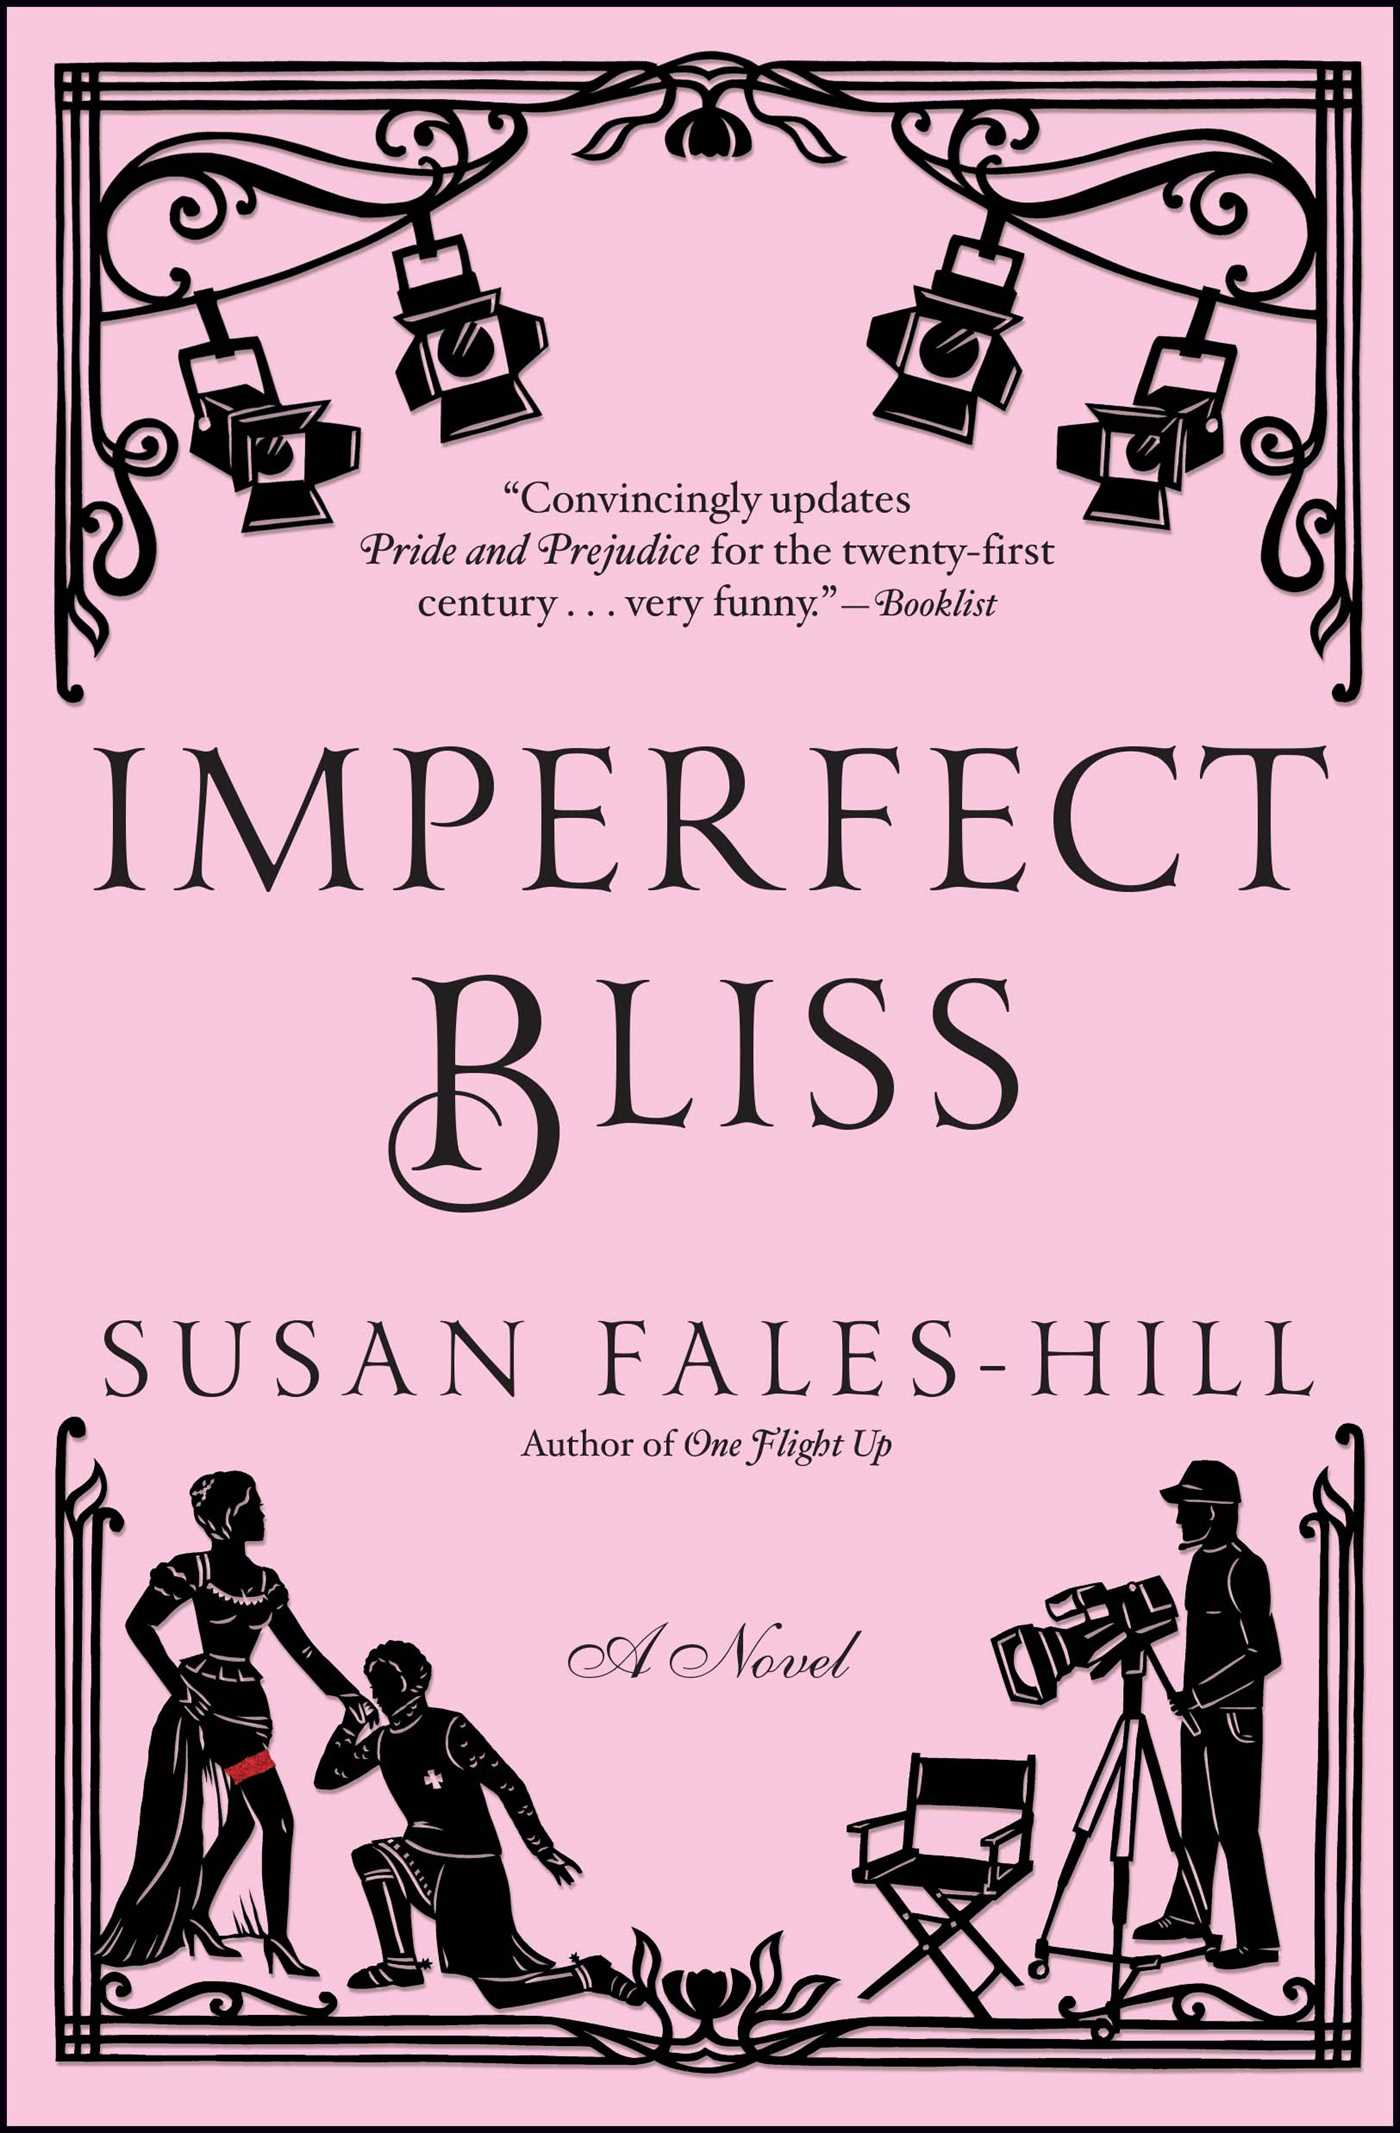 Imperfect bliss 9781451623840 hr